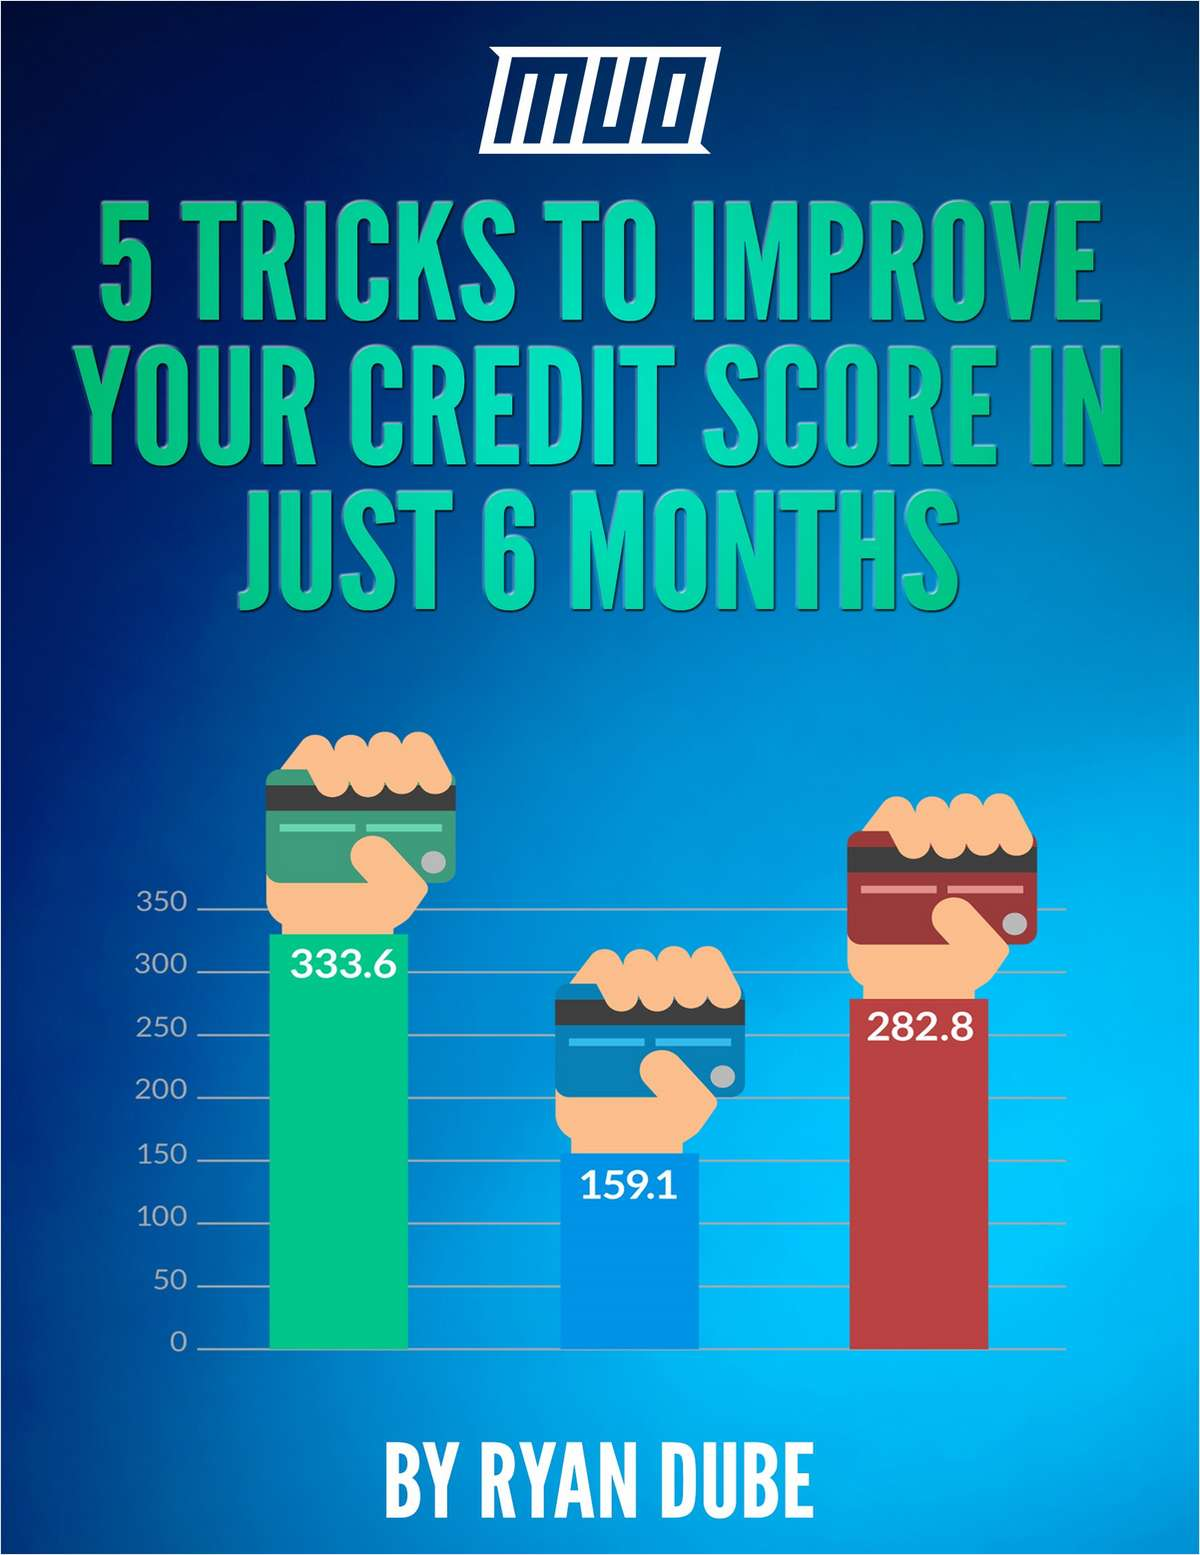 5 Tricks to Improve Your Credit Score in Just 6 Months